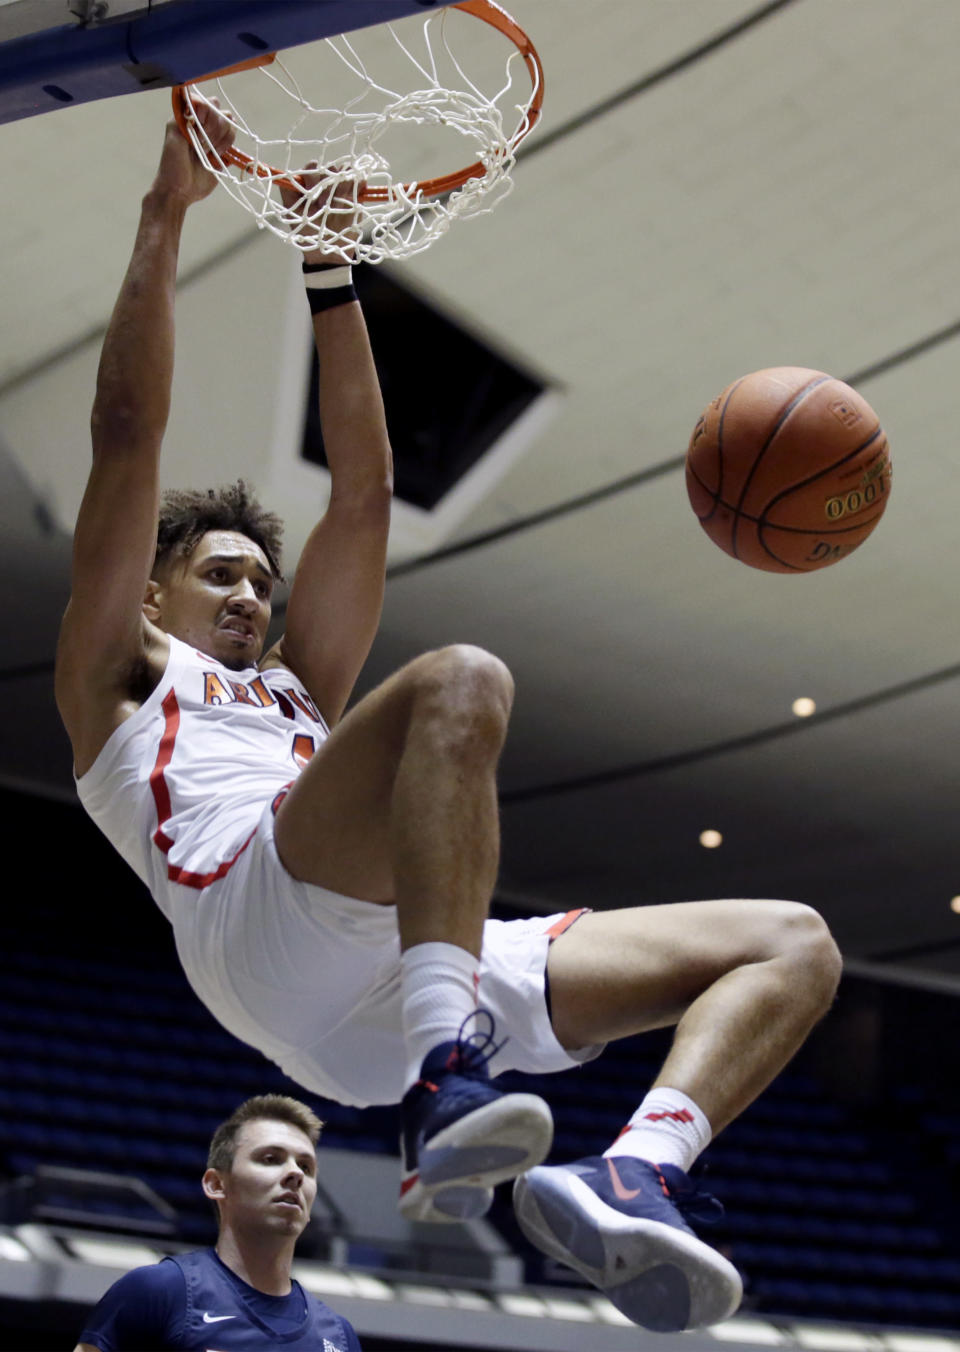 Arizona center Chase Jeter dunks in front of Pennsylvania guard Ryan Betley during the first half of an NCAA college basketball game at the Wooden Legacy tournament in Anaheim, Calif., Friday, Nov. 29, 2019. (AP Photo/Alex Gallardo)